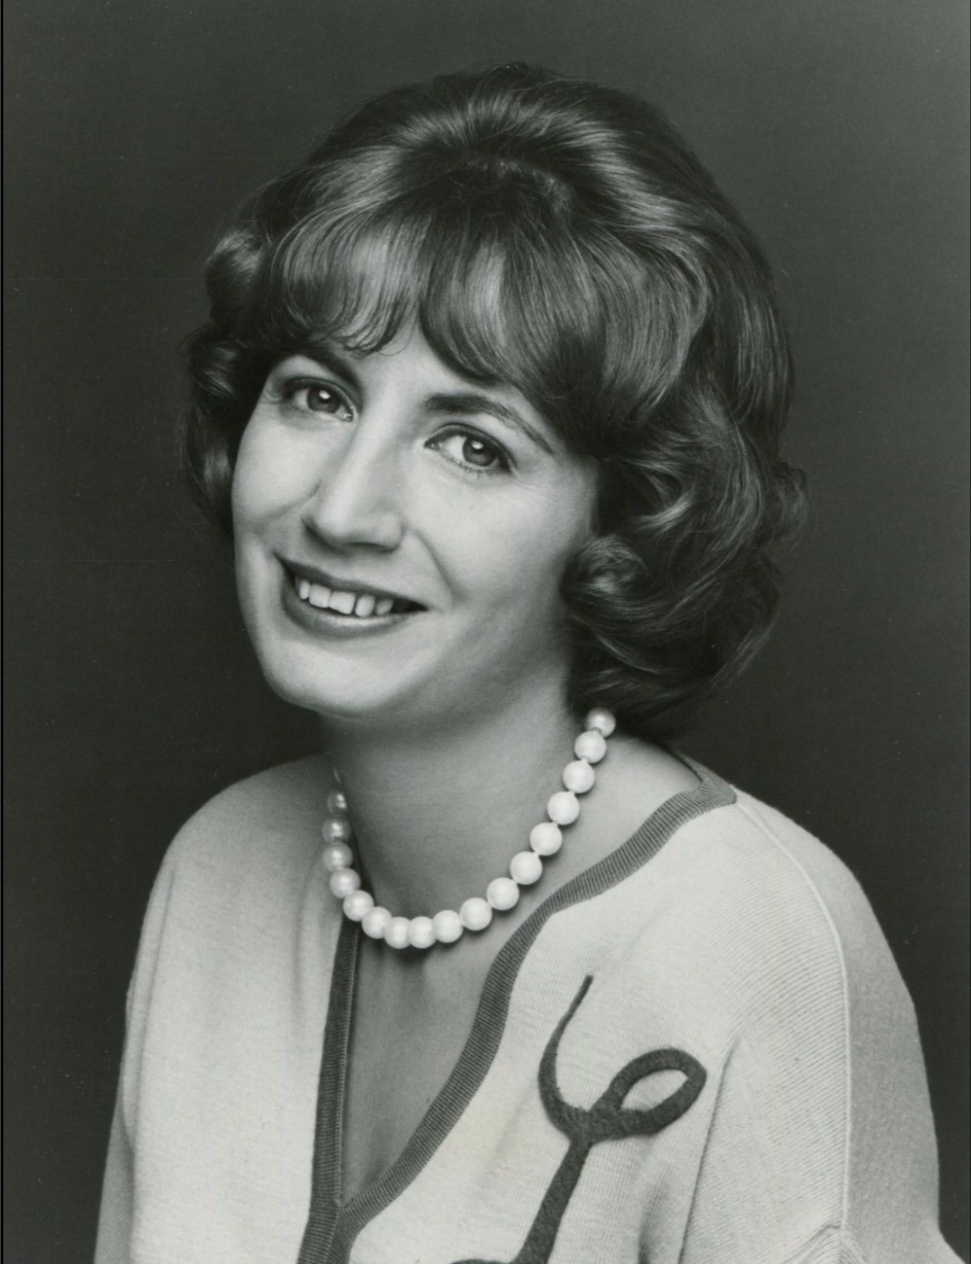 Penny Marshall publicity photo for Laverne & Shirley, dated January 13, 1976